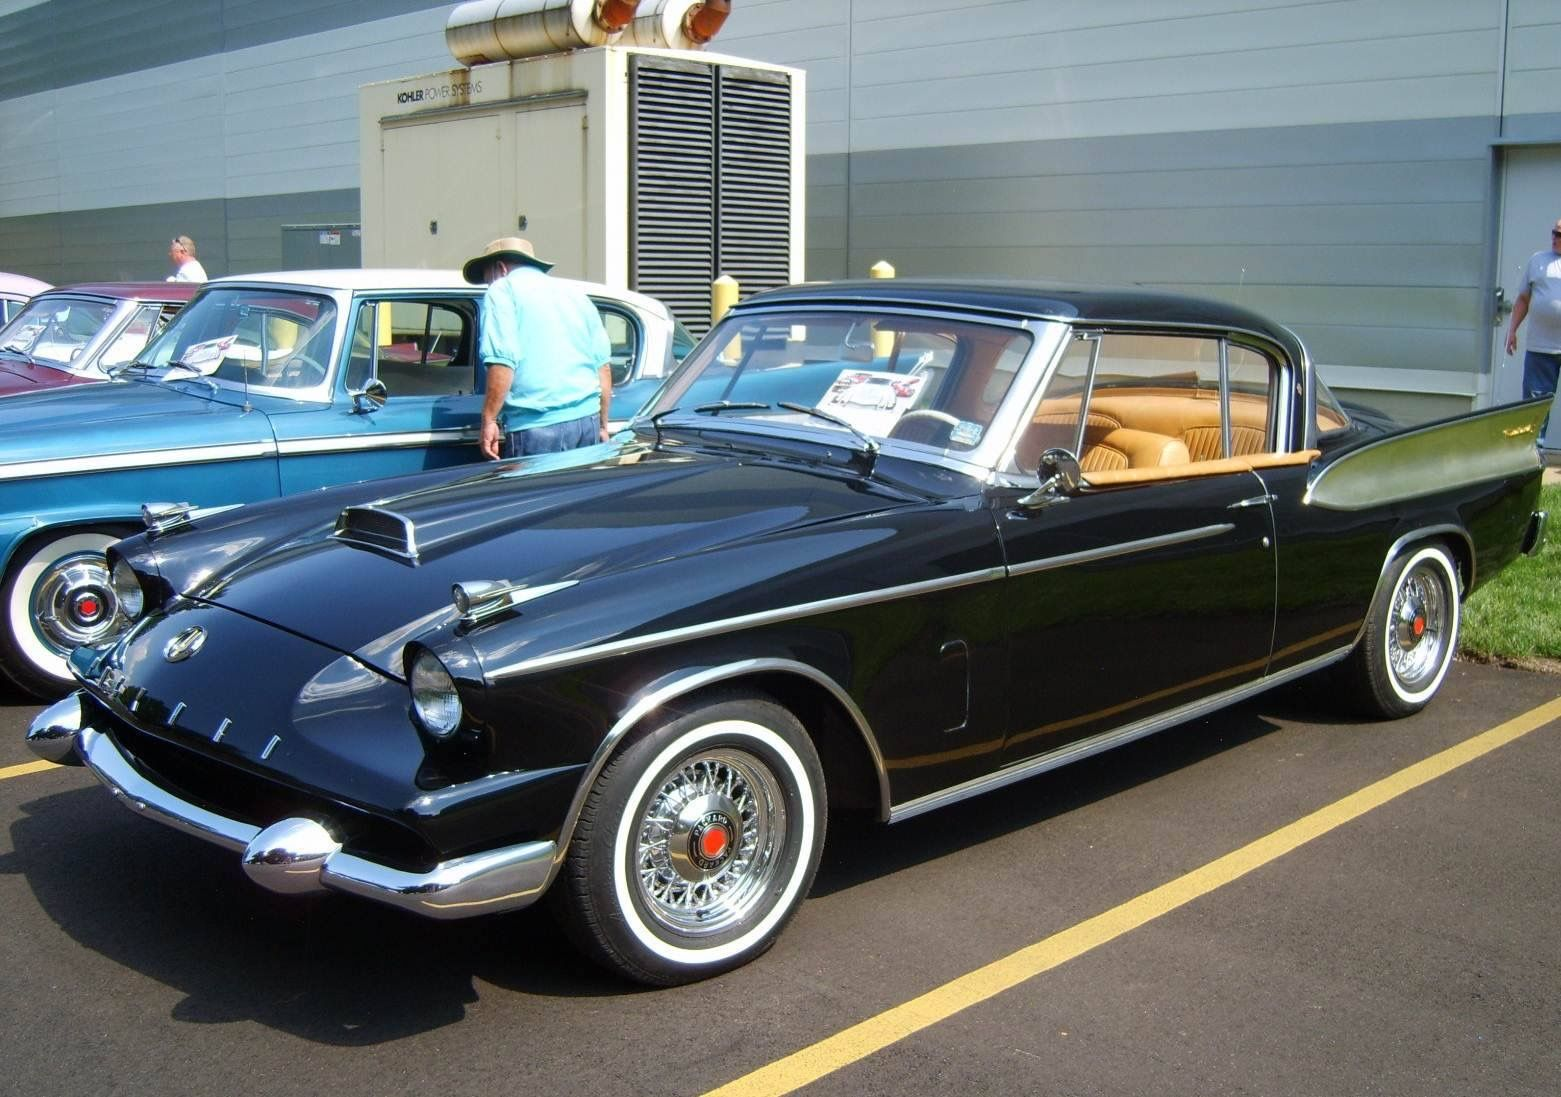 Pin by Herb Jure on Old cars | Pinterest | Cars